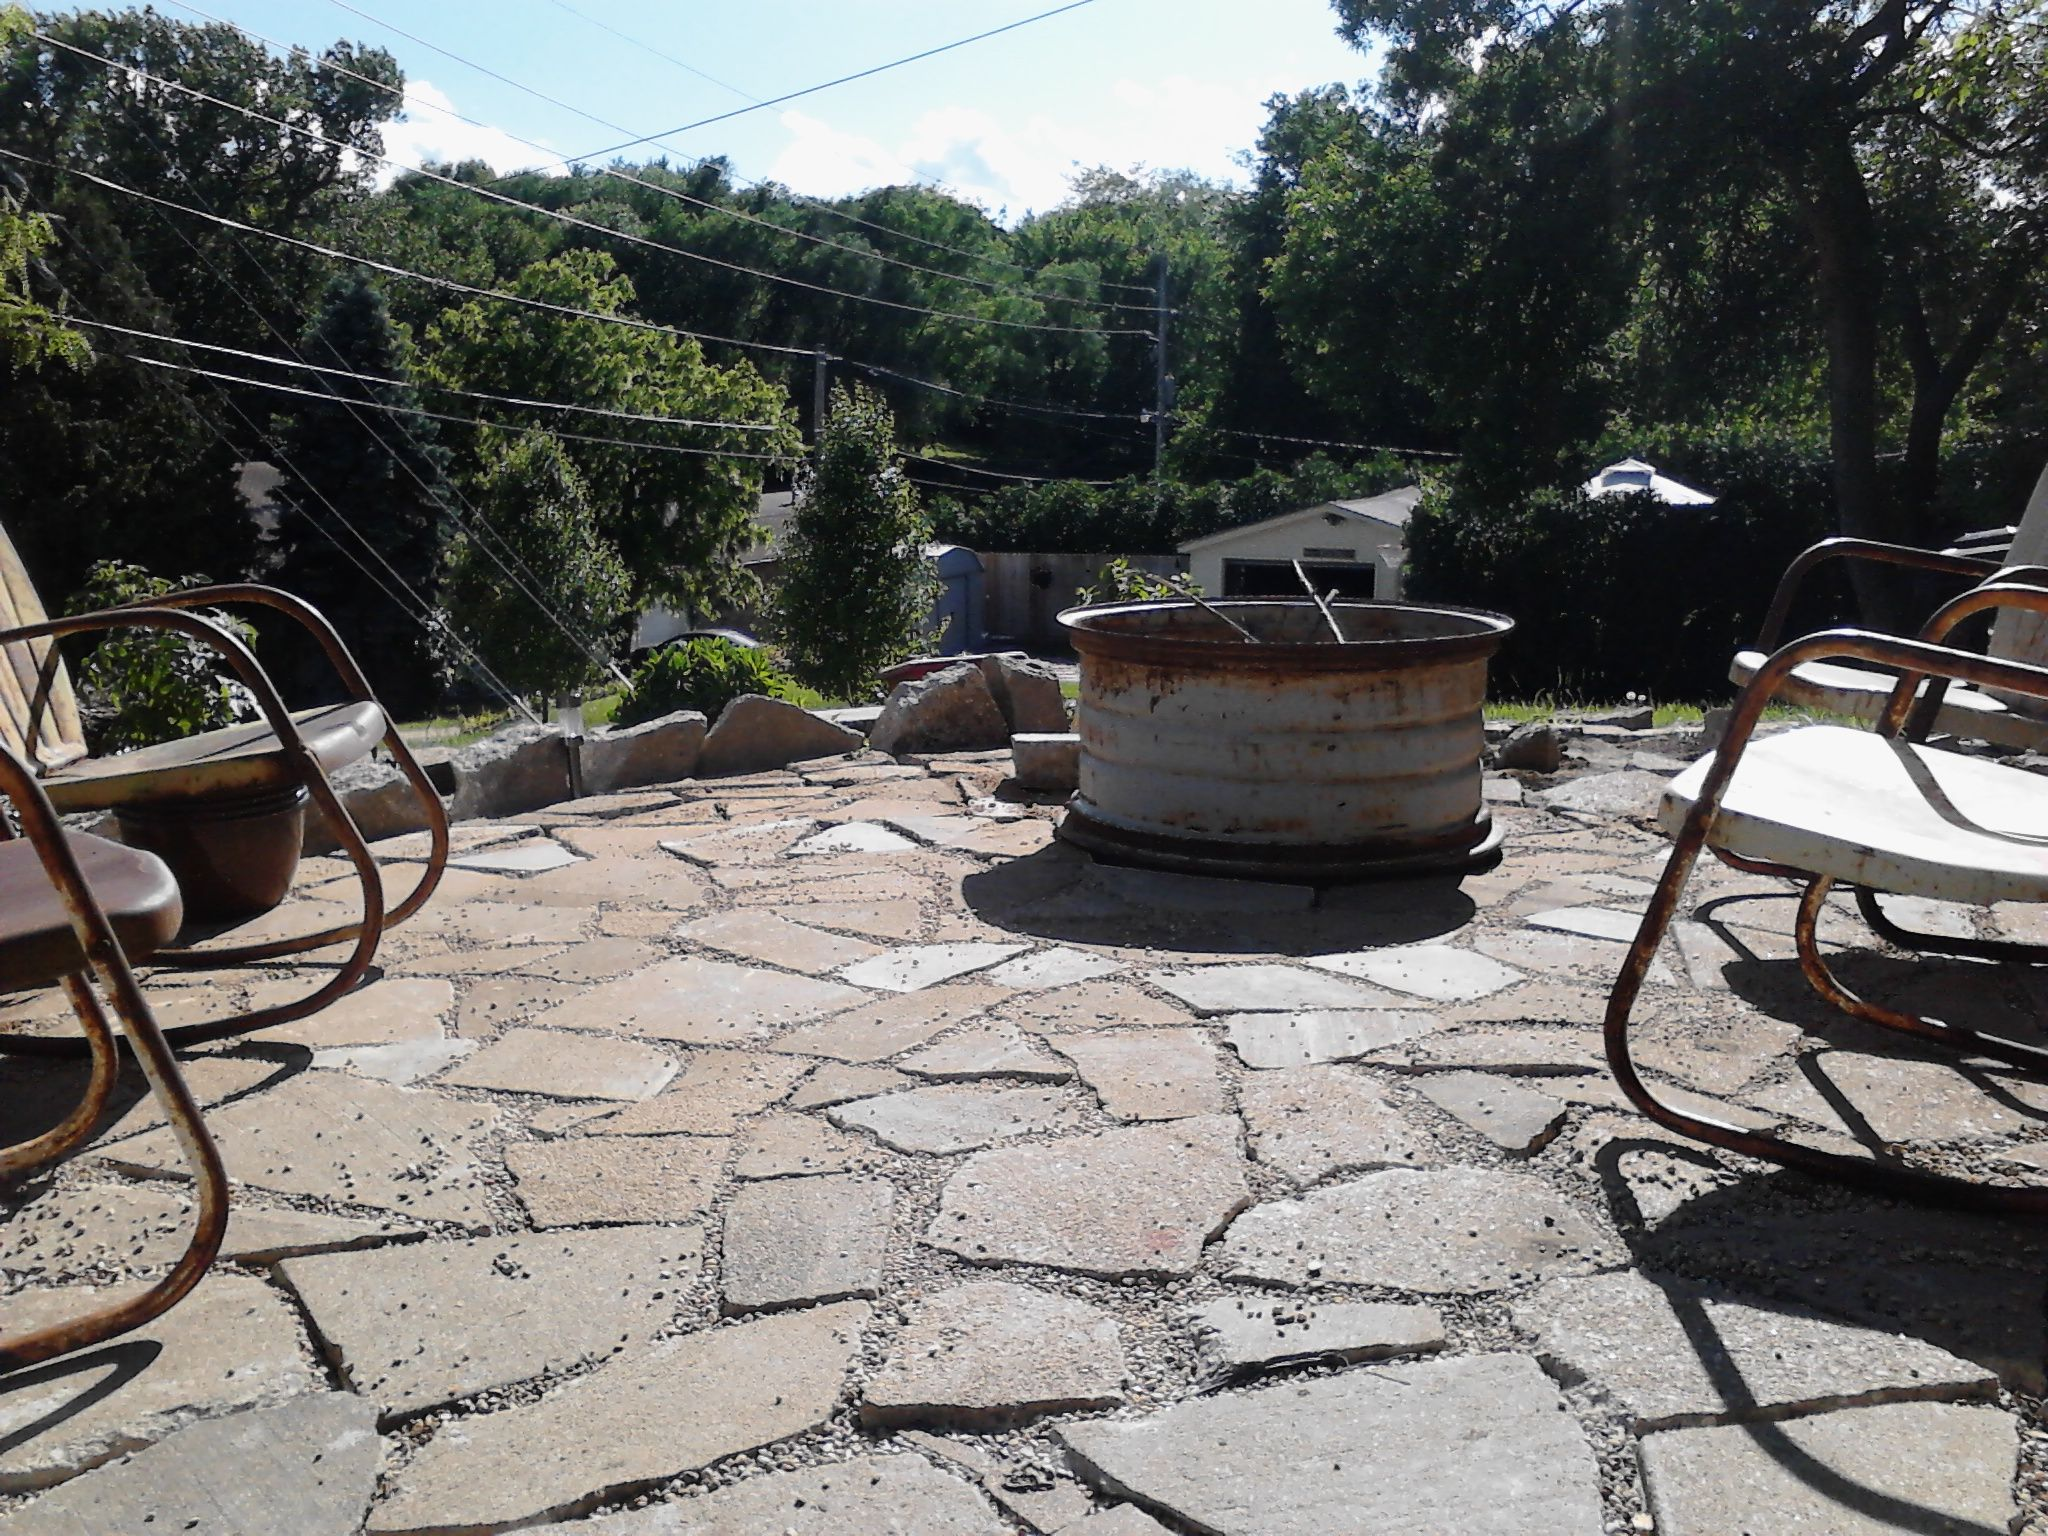 Recycled Concrete Patio   Broken Up Sidewalk Cement Patio, Old Tractor Tire  Fire Ring, Old Metal Chairs